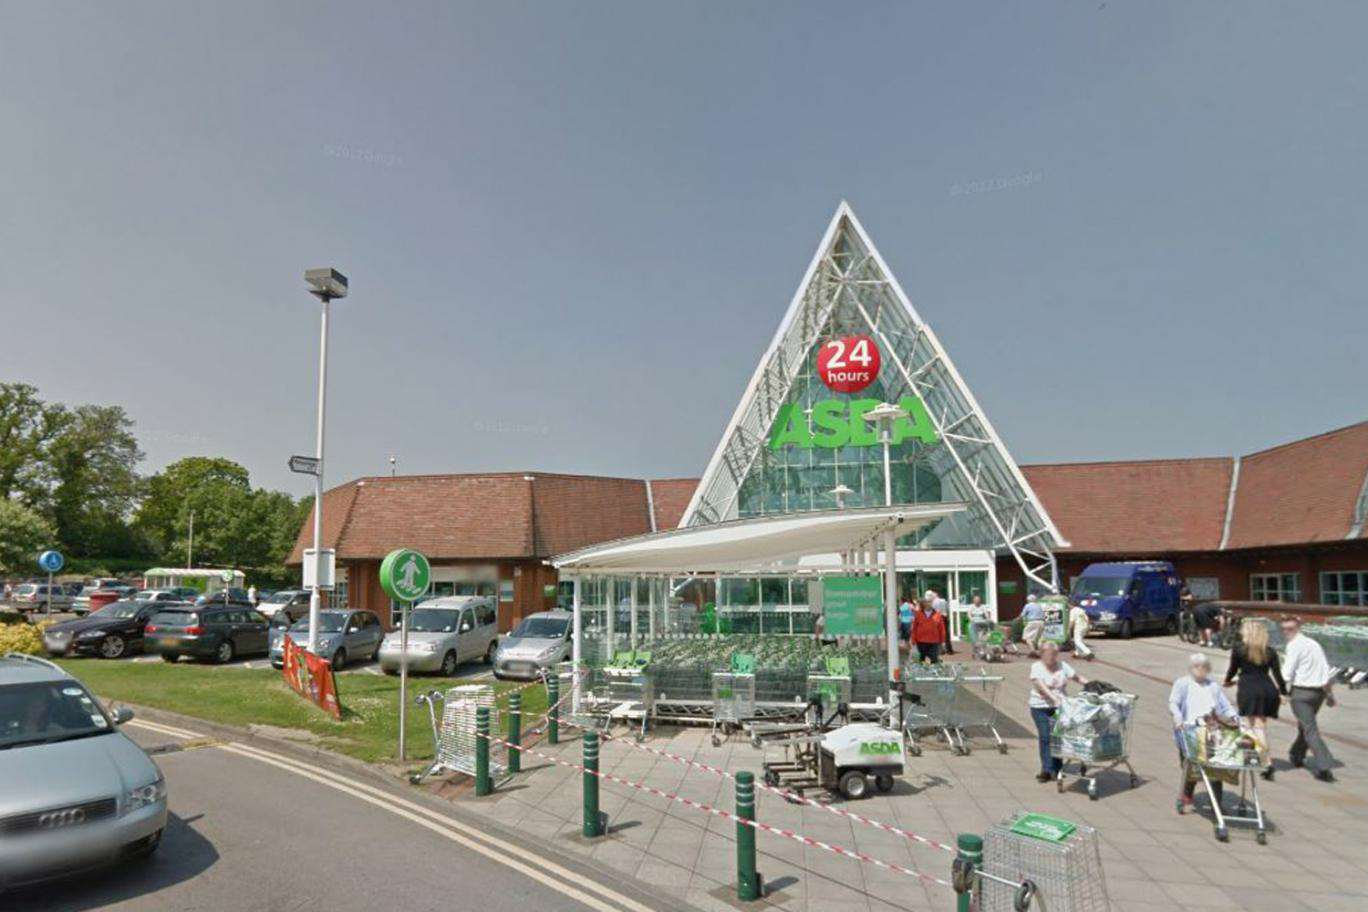 Nine Month Pregnant Woman Fined For Using Mother And Child Space asda1